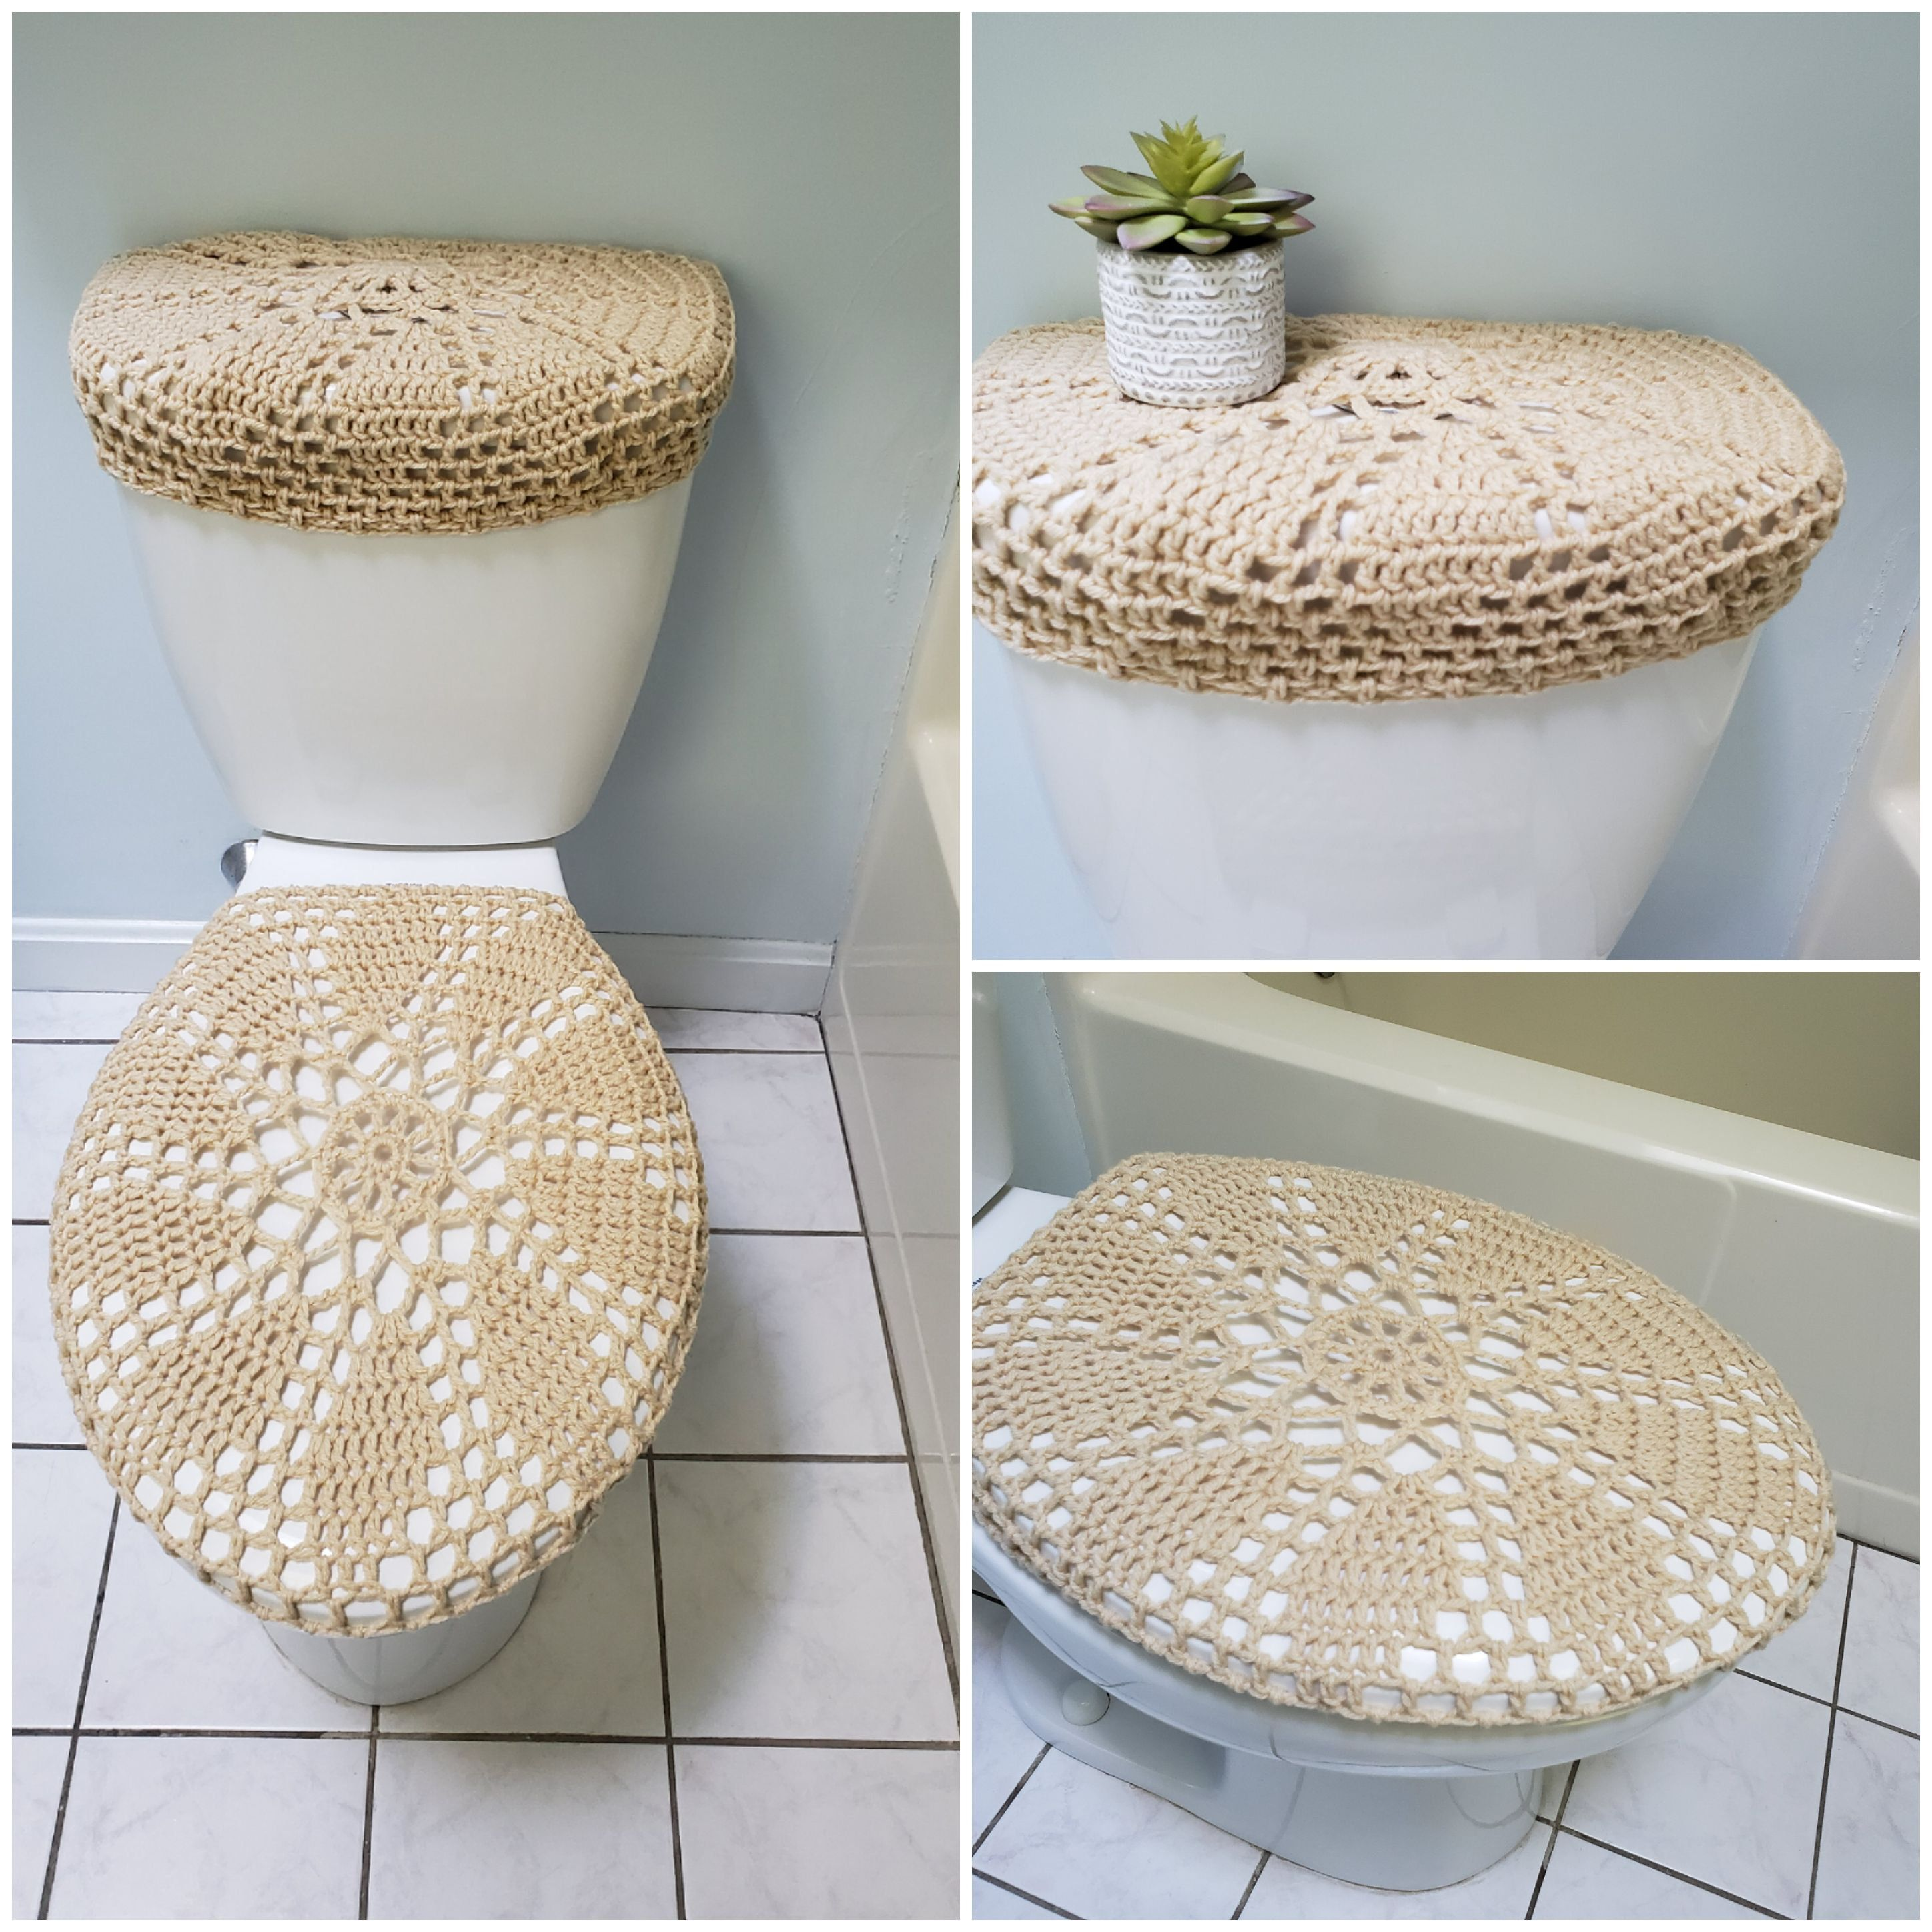 Crochet Toilet Seat Cover Or Tank Lid Cover Oatmeal Tsc28f Or